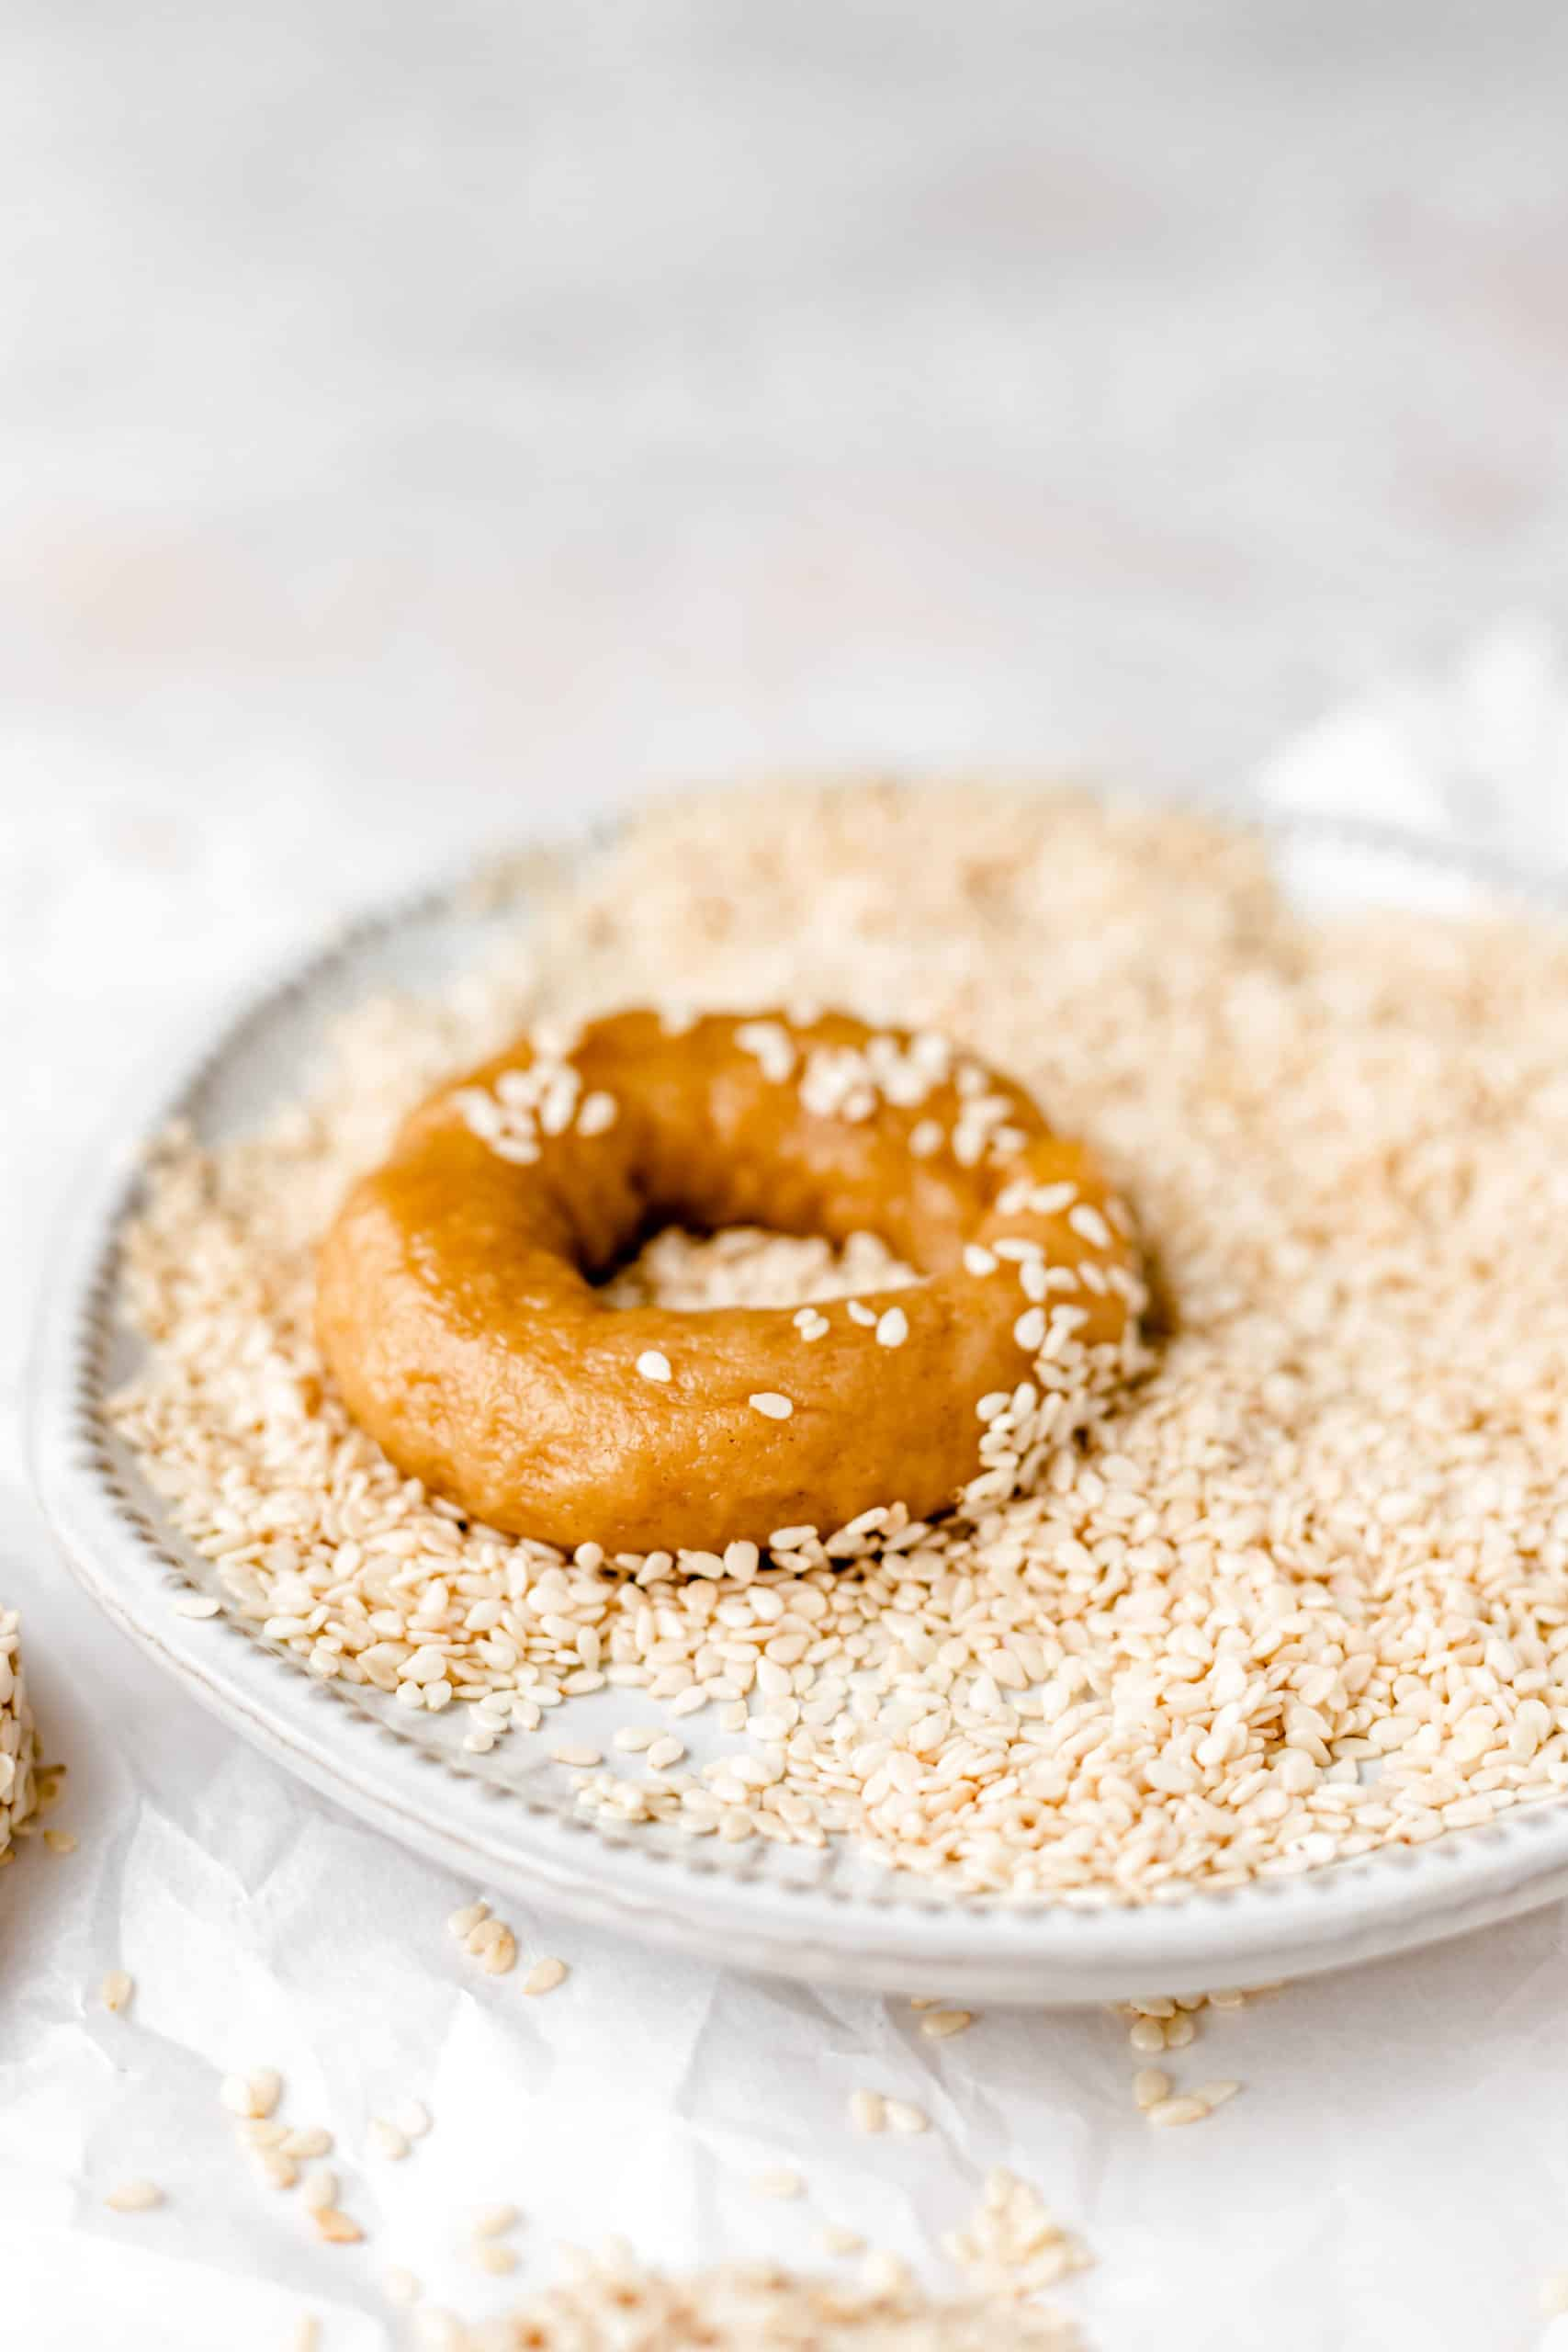 olive oil and orange cookie in a plate of sesame seeds